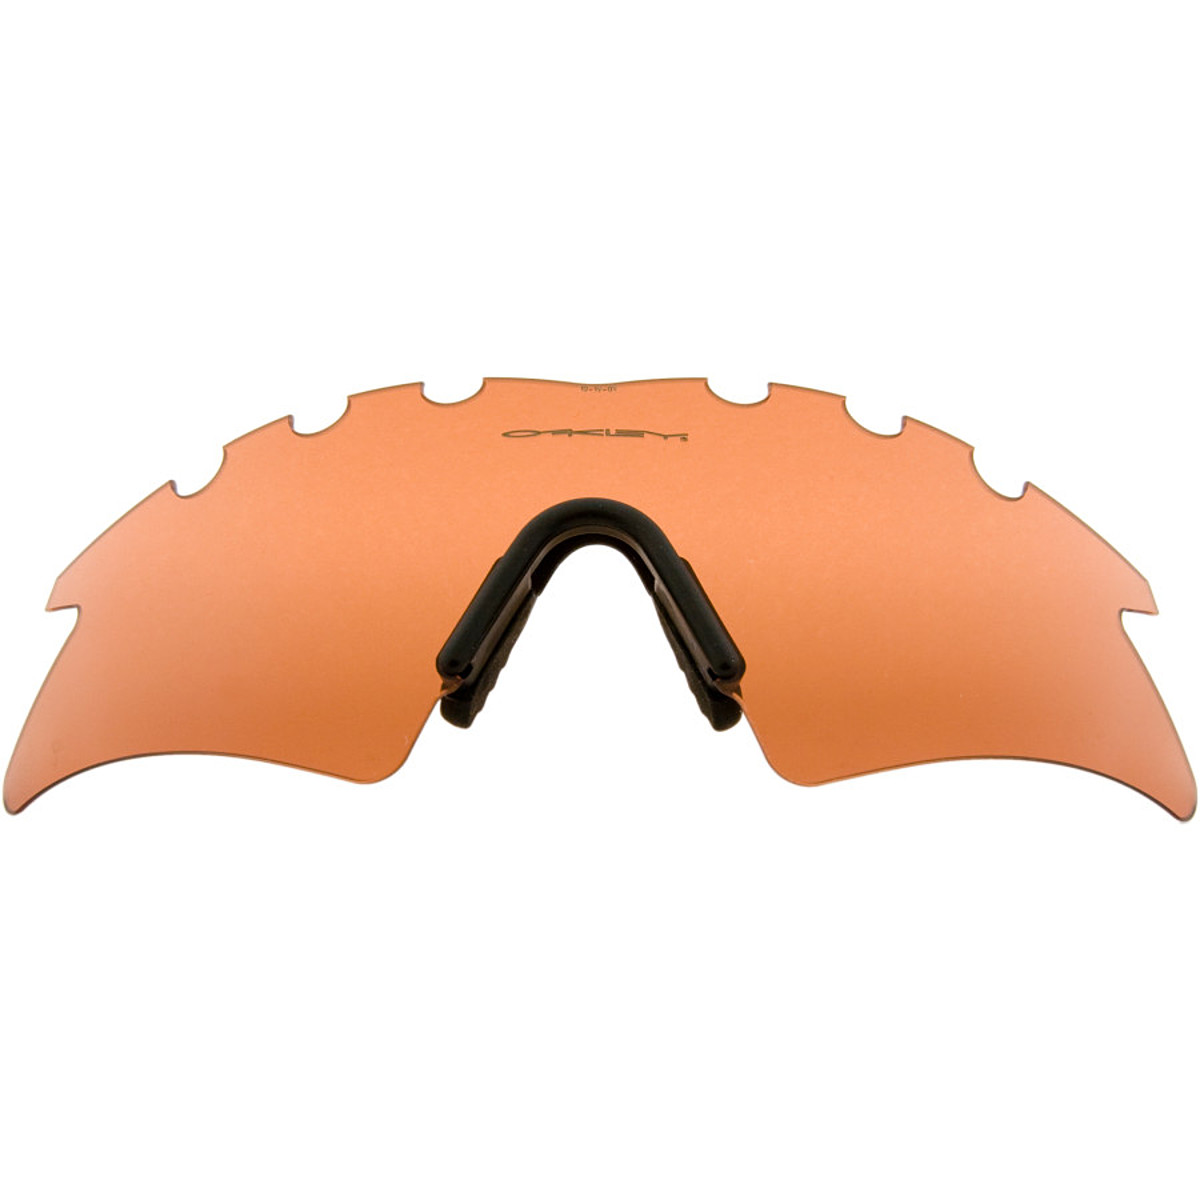 photo: Oakley M Frame Sweep Accessory Lens Kit sunglass lens